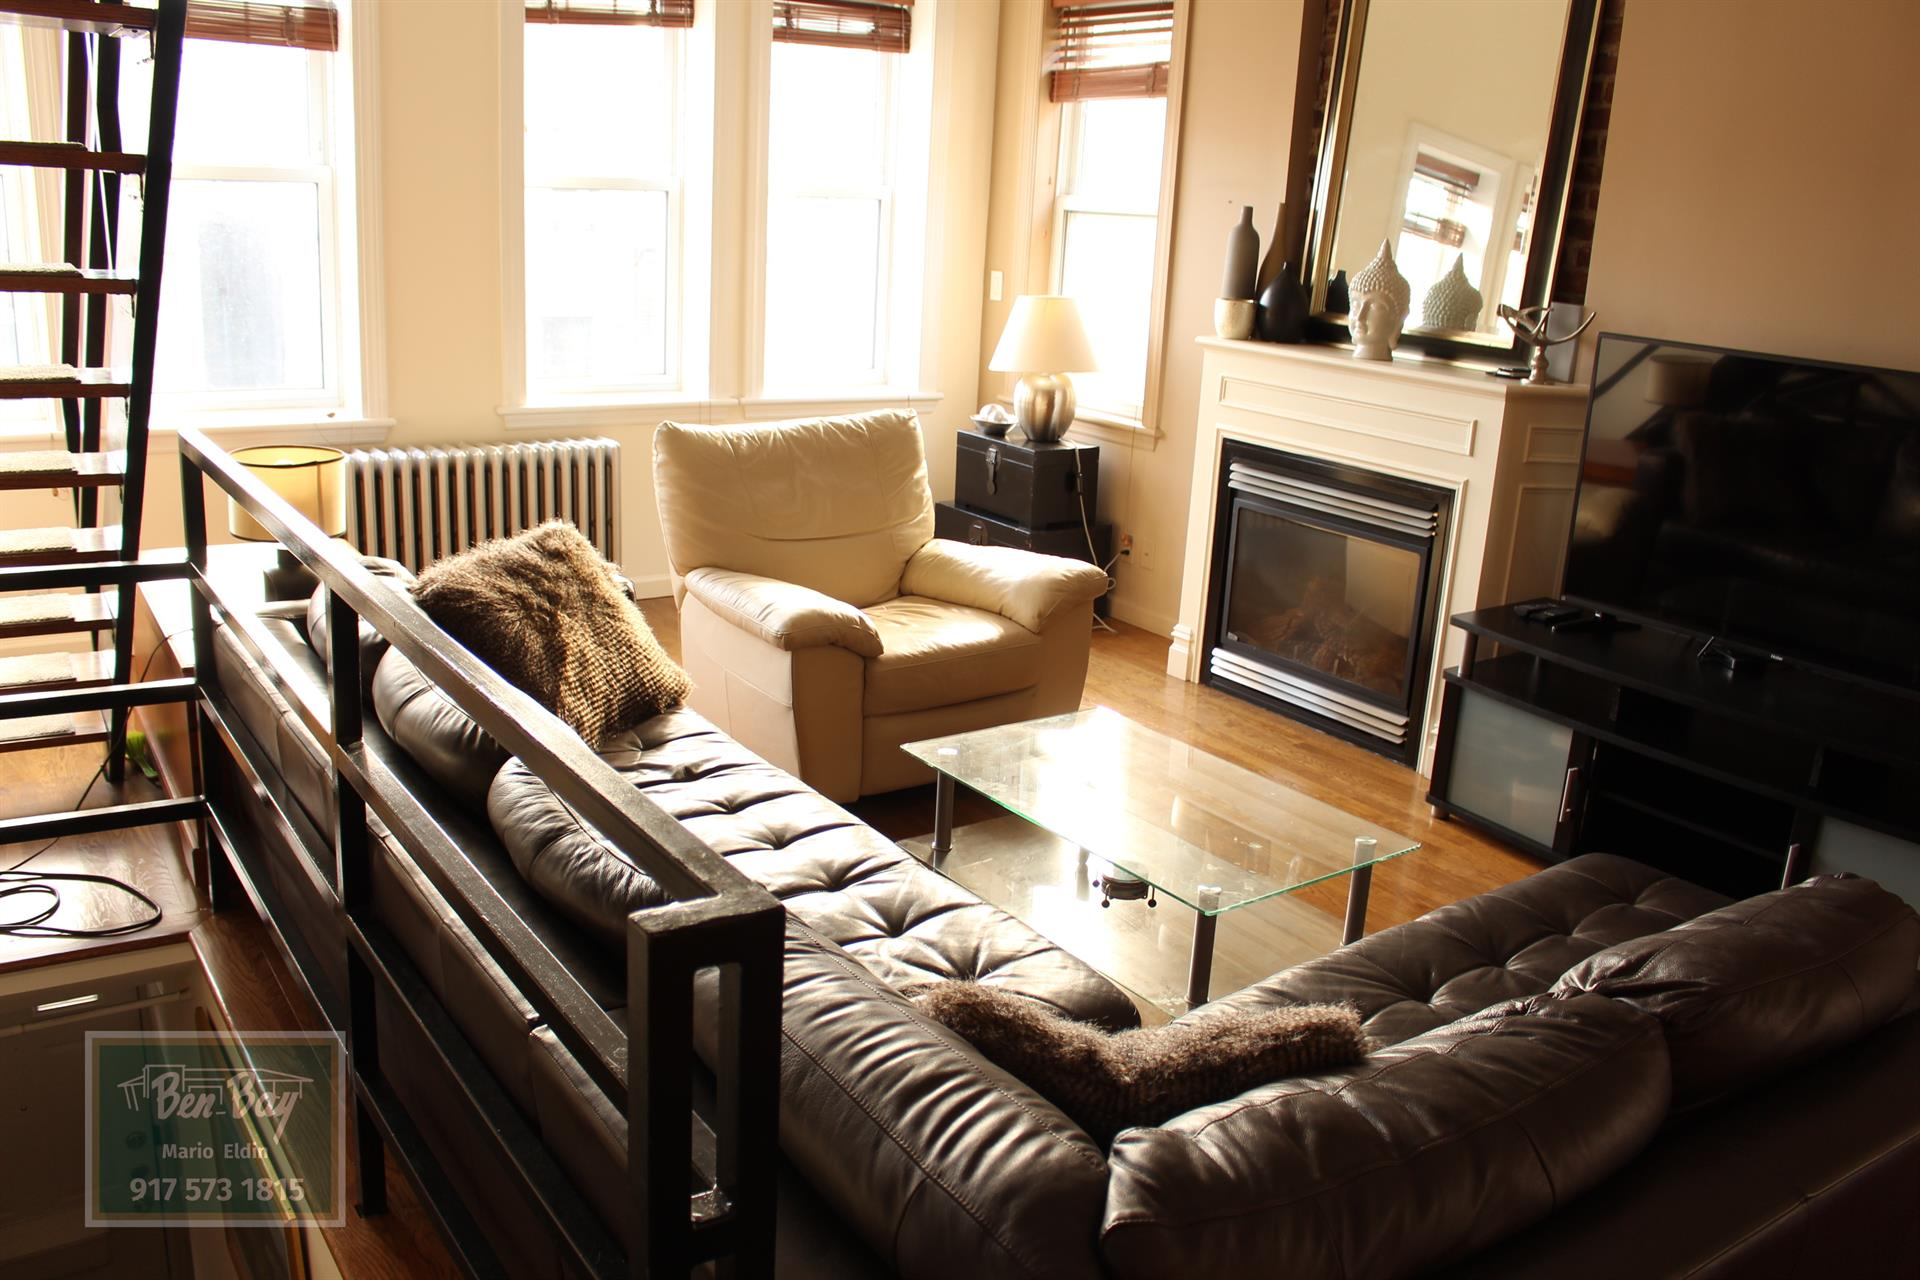 Additional photo for property listing at 315 89th Street  Brooklyn, New York 11209 United States